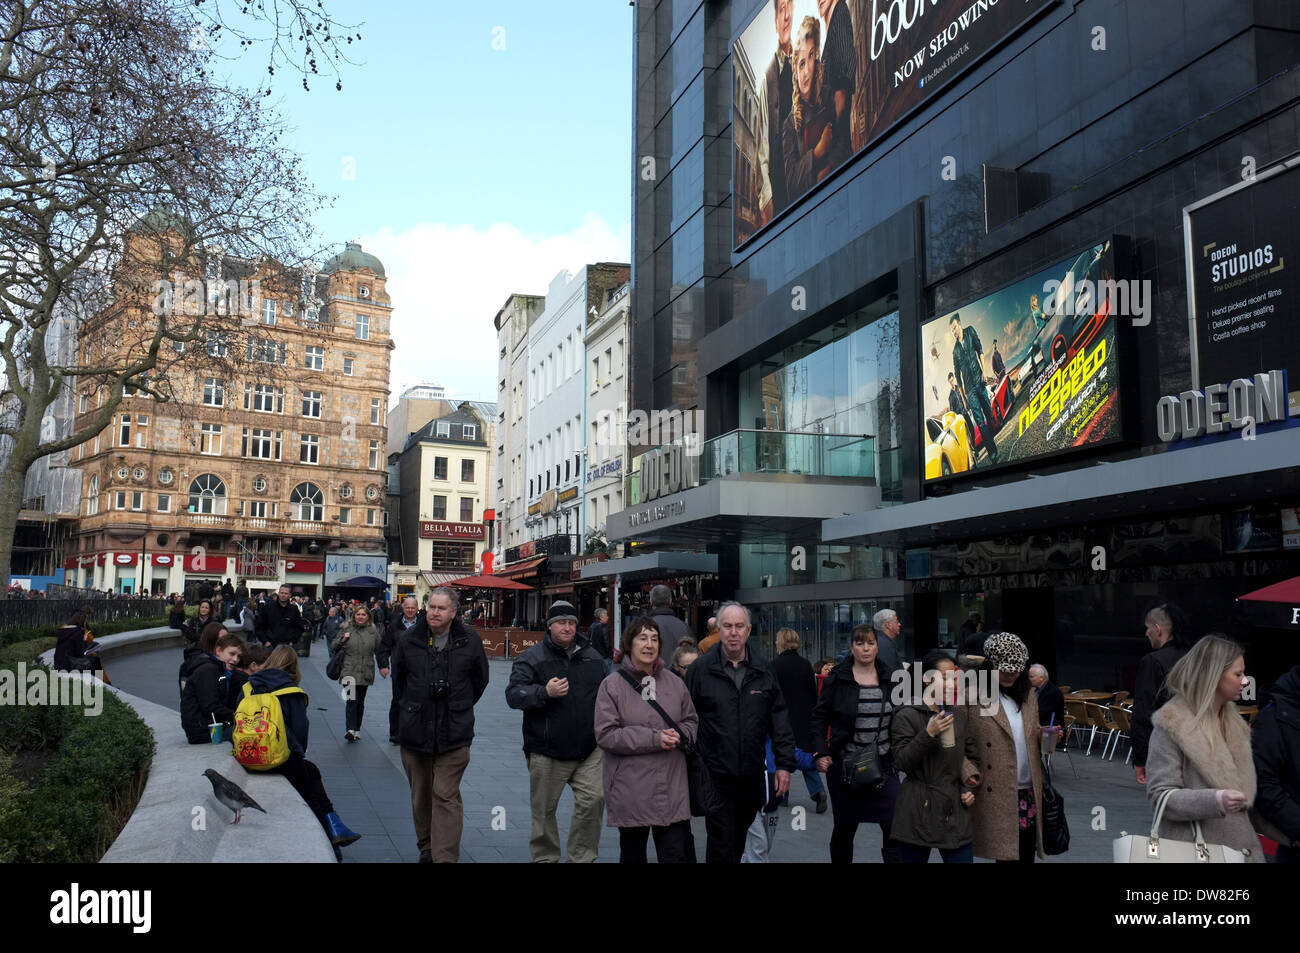 leicester square and showing the odeon cinema london wc2 uk 2014 - Stock Image